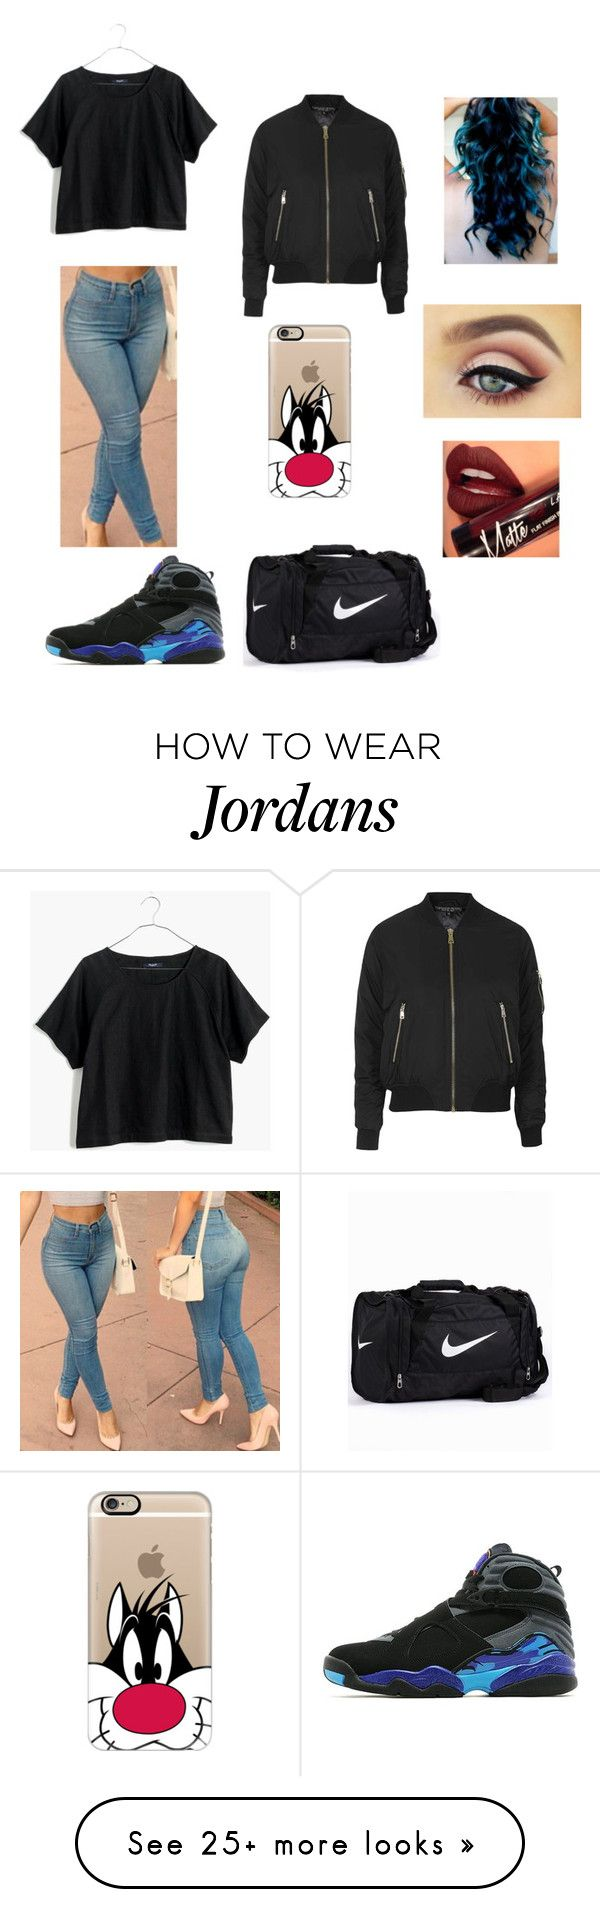 """After dance"" by junebug02 on Polyvore featuring Topshop, Jordan Brand, Casetify, NIKE, Madewell, Fiebiger, women's clothing, women's fashion, women and female"